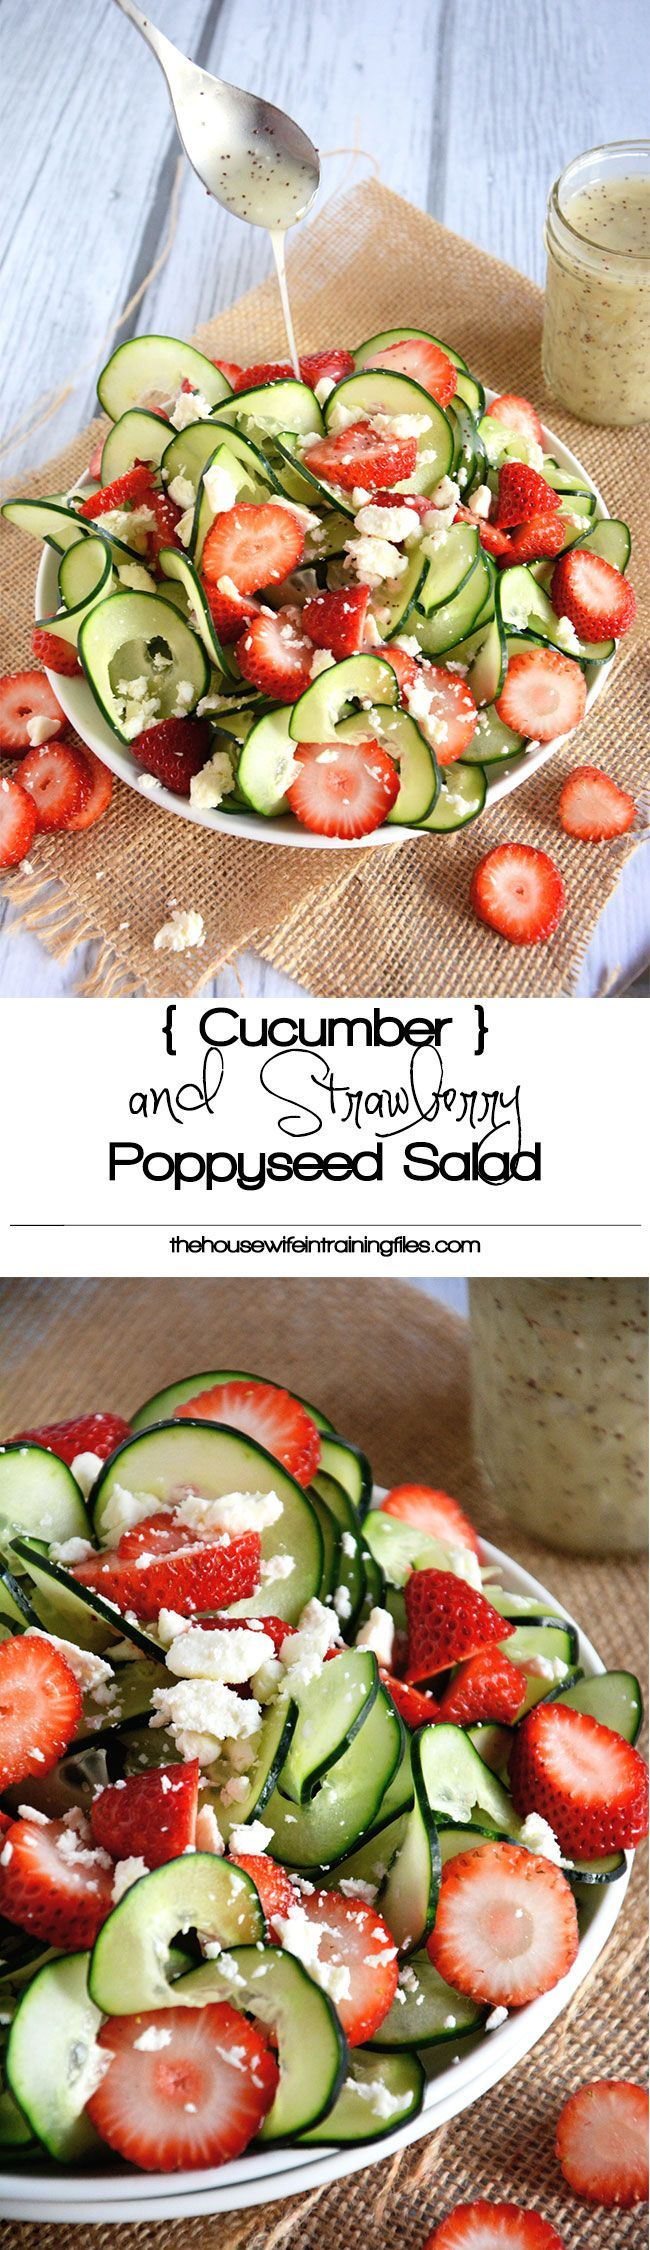 Strawberry Poppyseed Salad | Panera, Feta, Recipe, Summer, Cheese, Gluten Free, Spiralized, Cucumber, Easy, Healthy